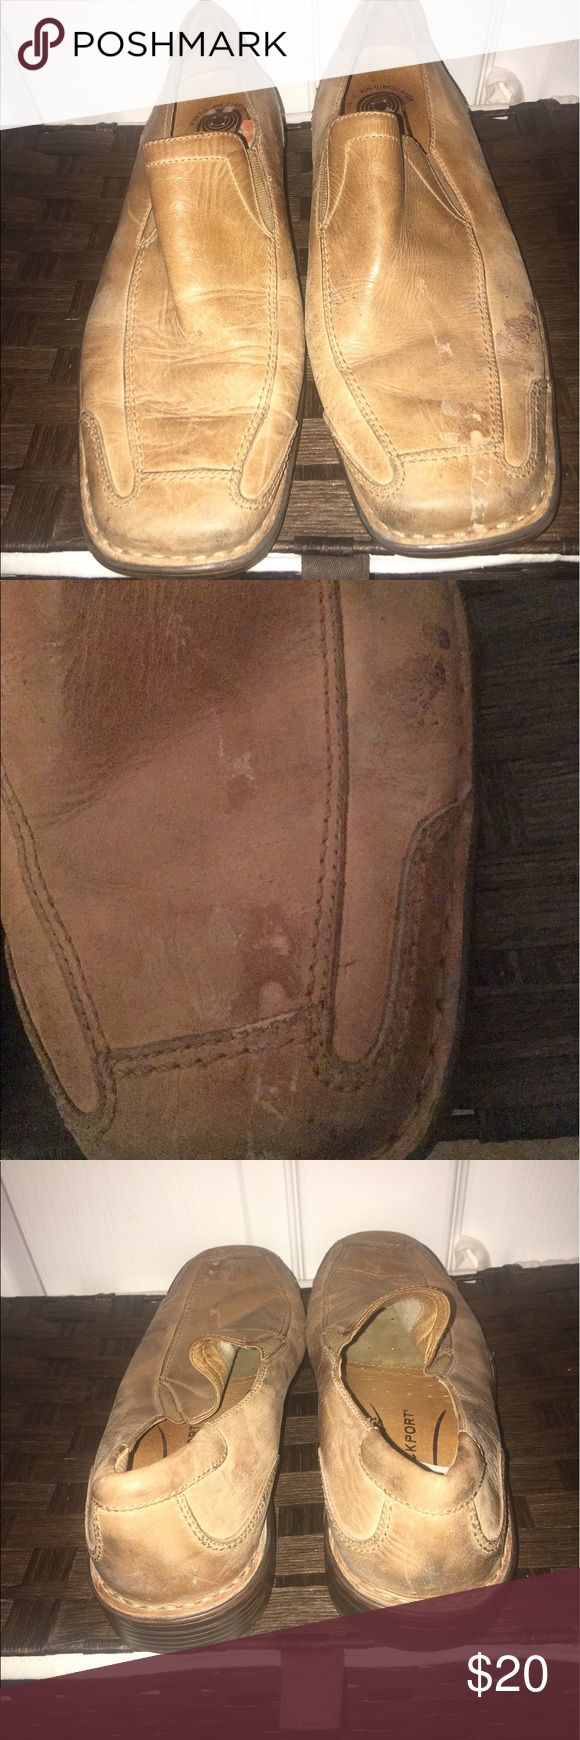 ROCKPORT SHOE Very comfortable needs cleaning but still in good condition Rockport Shoes Loafers & Slip-Ons